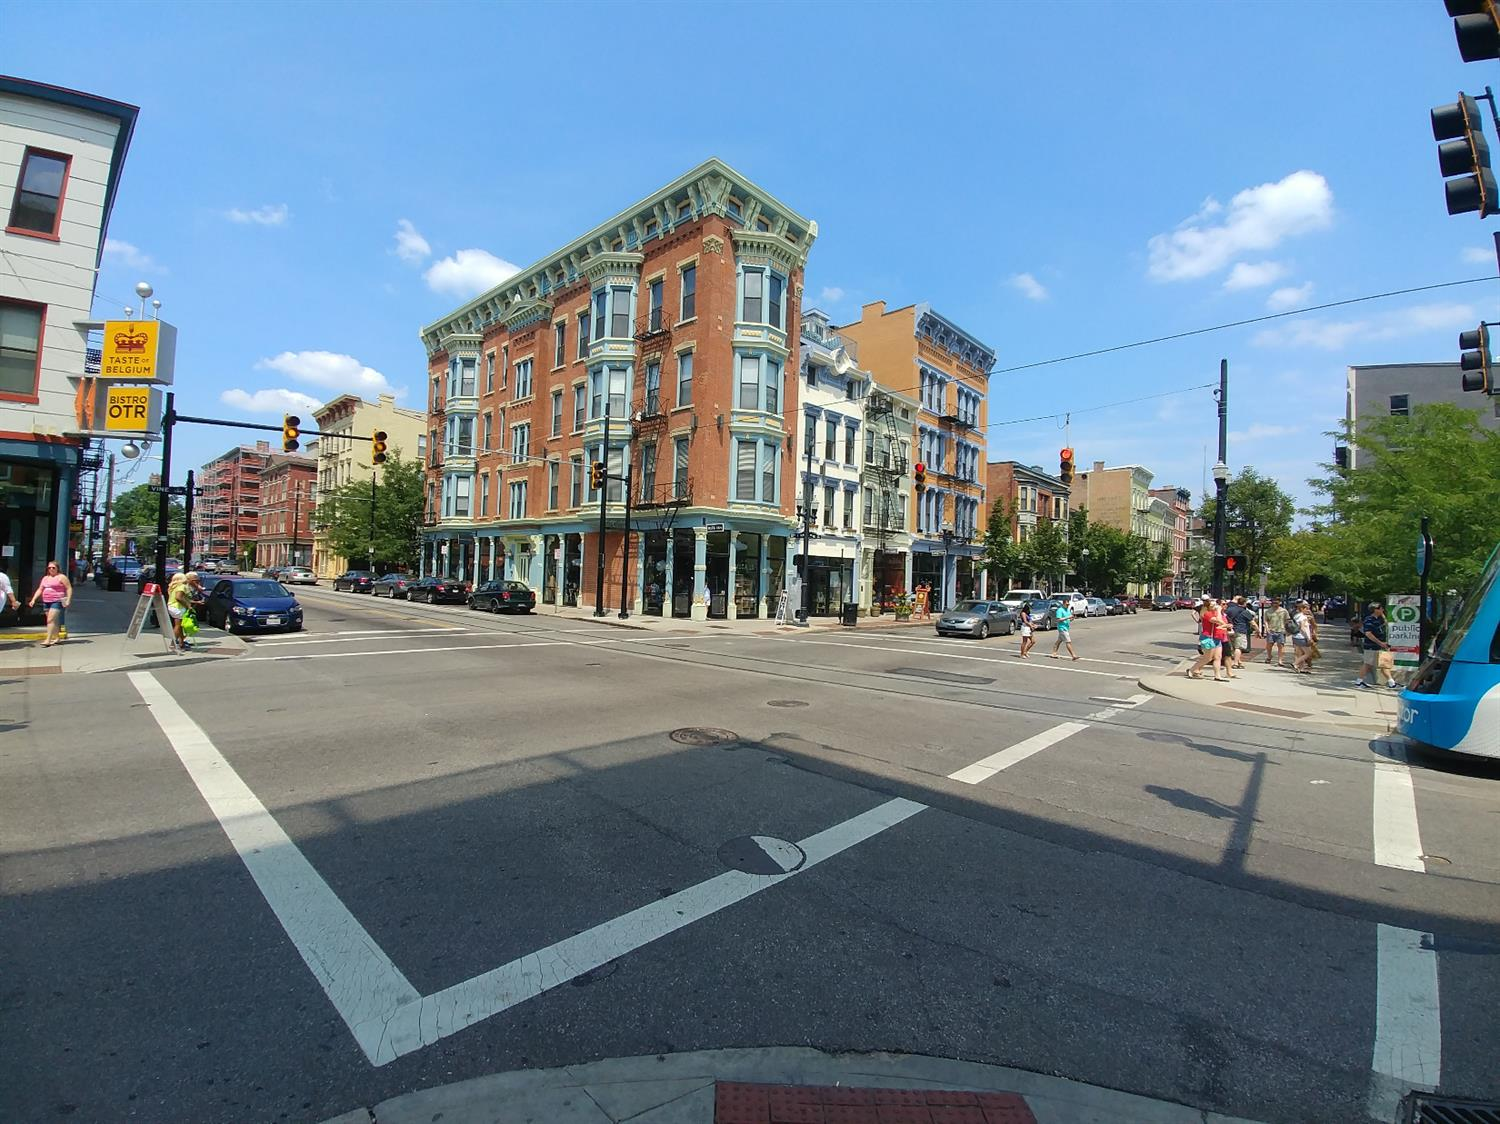 The shops on Vine Street is less than 1 mile from 142 Mulberry.